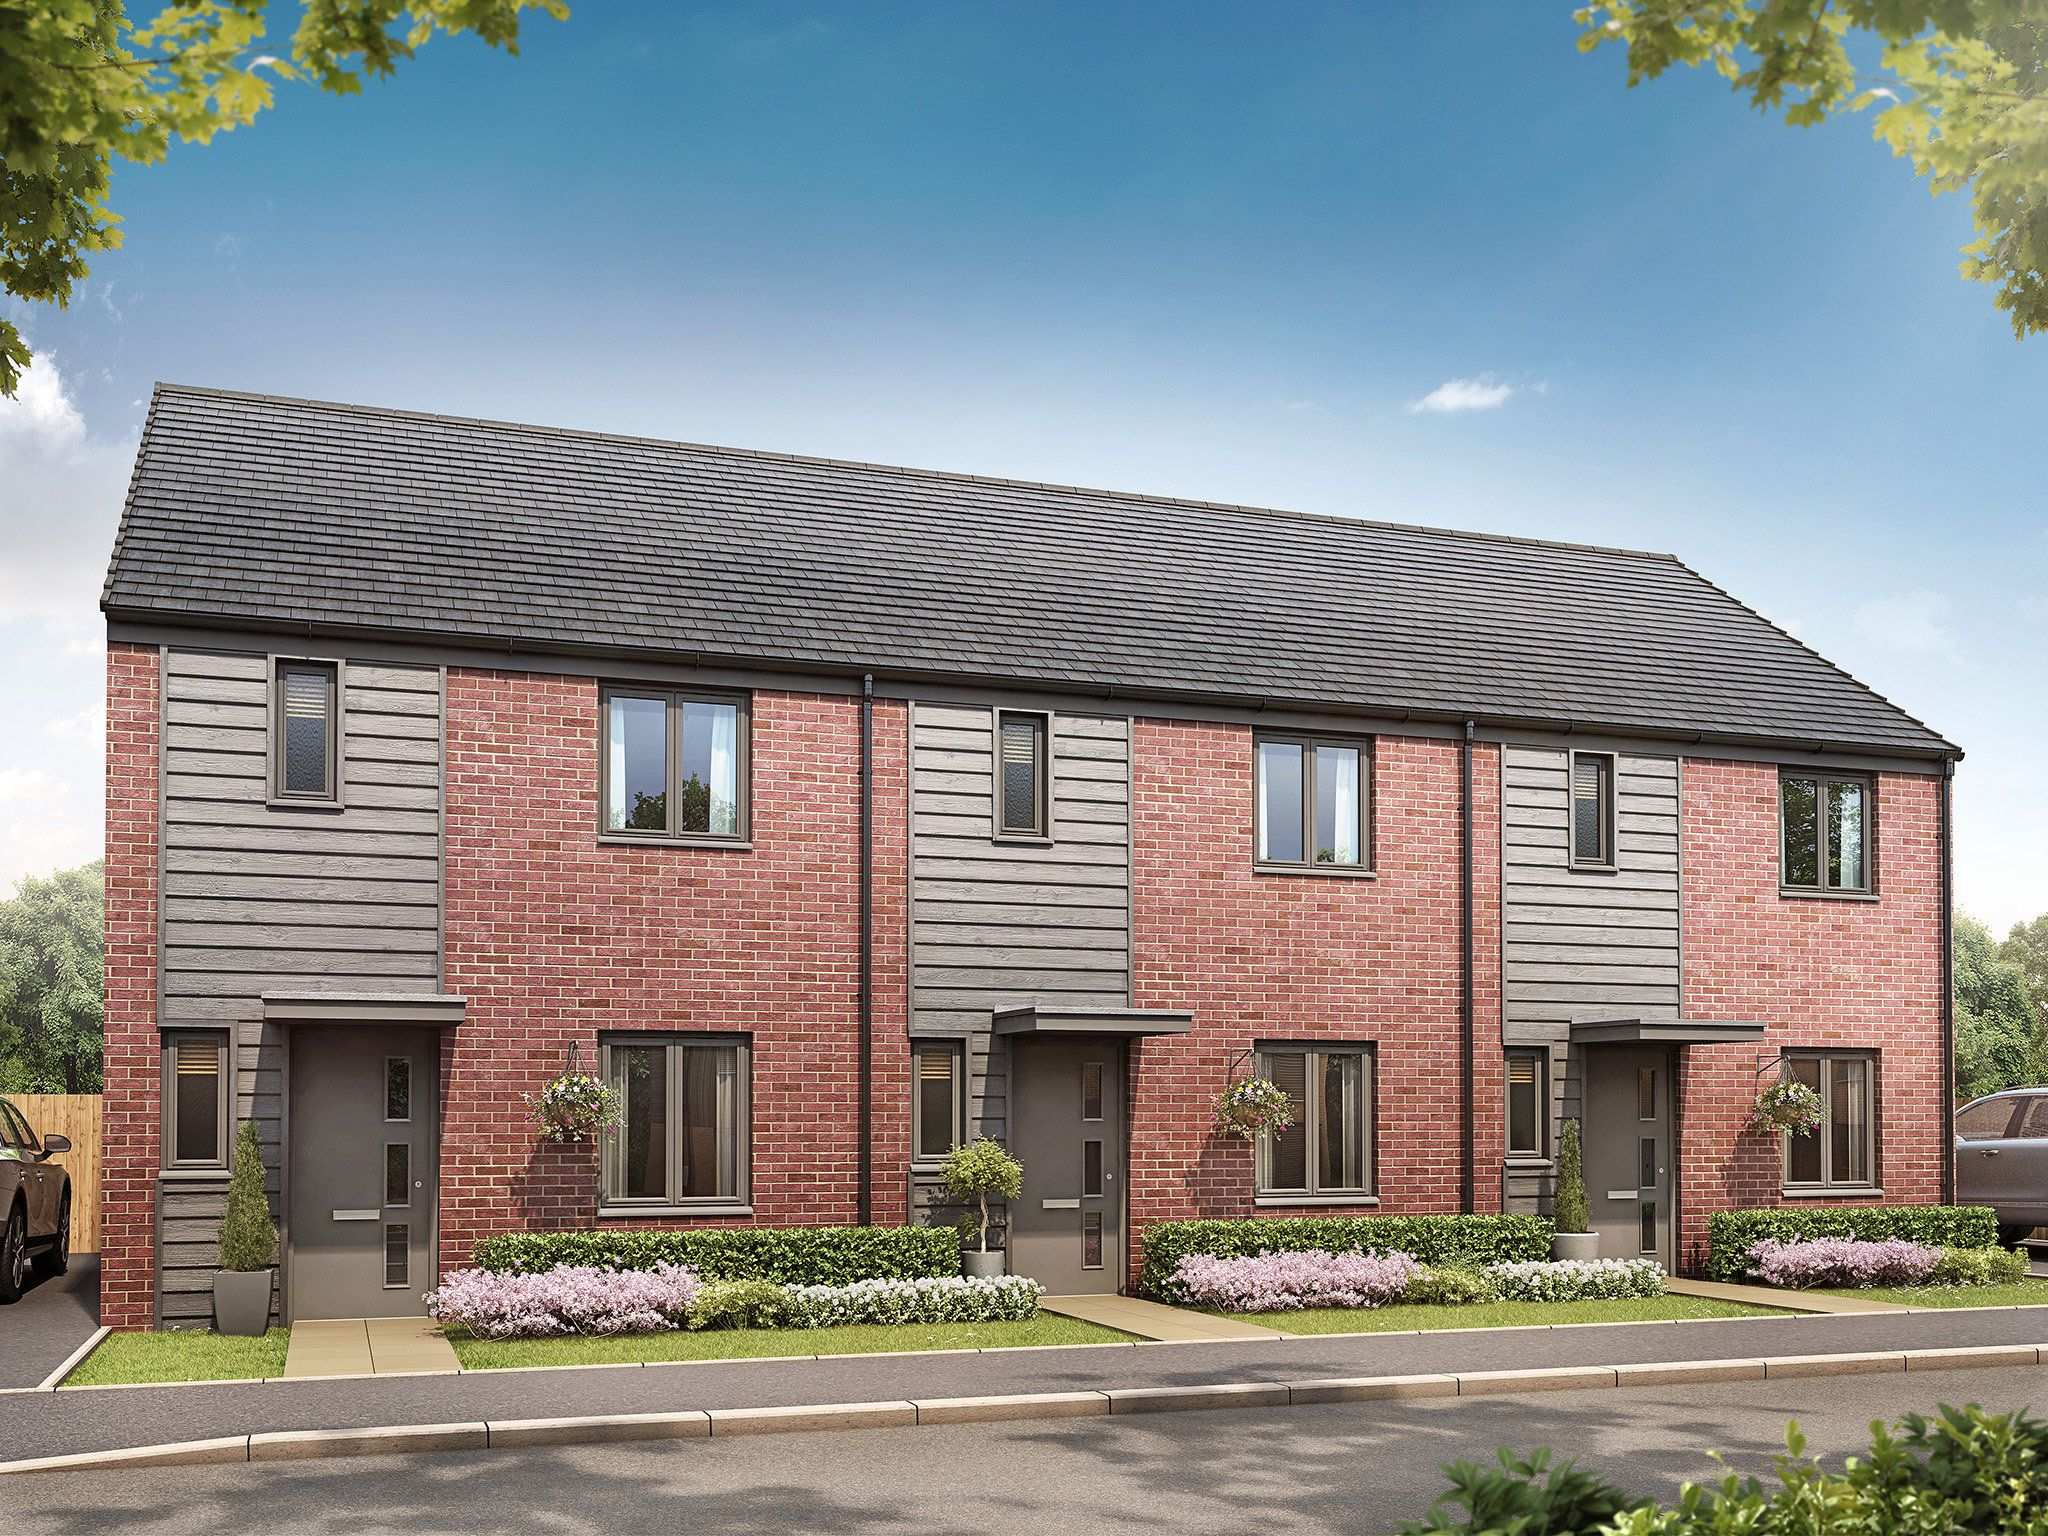 The Beeches development image 1 of 1